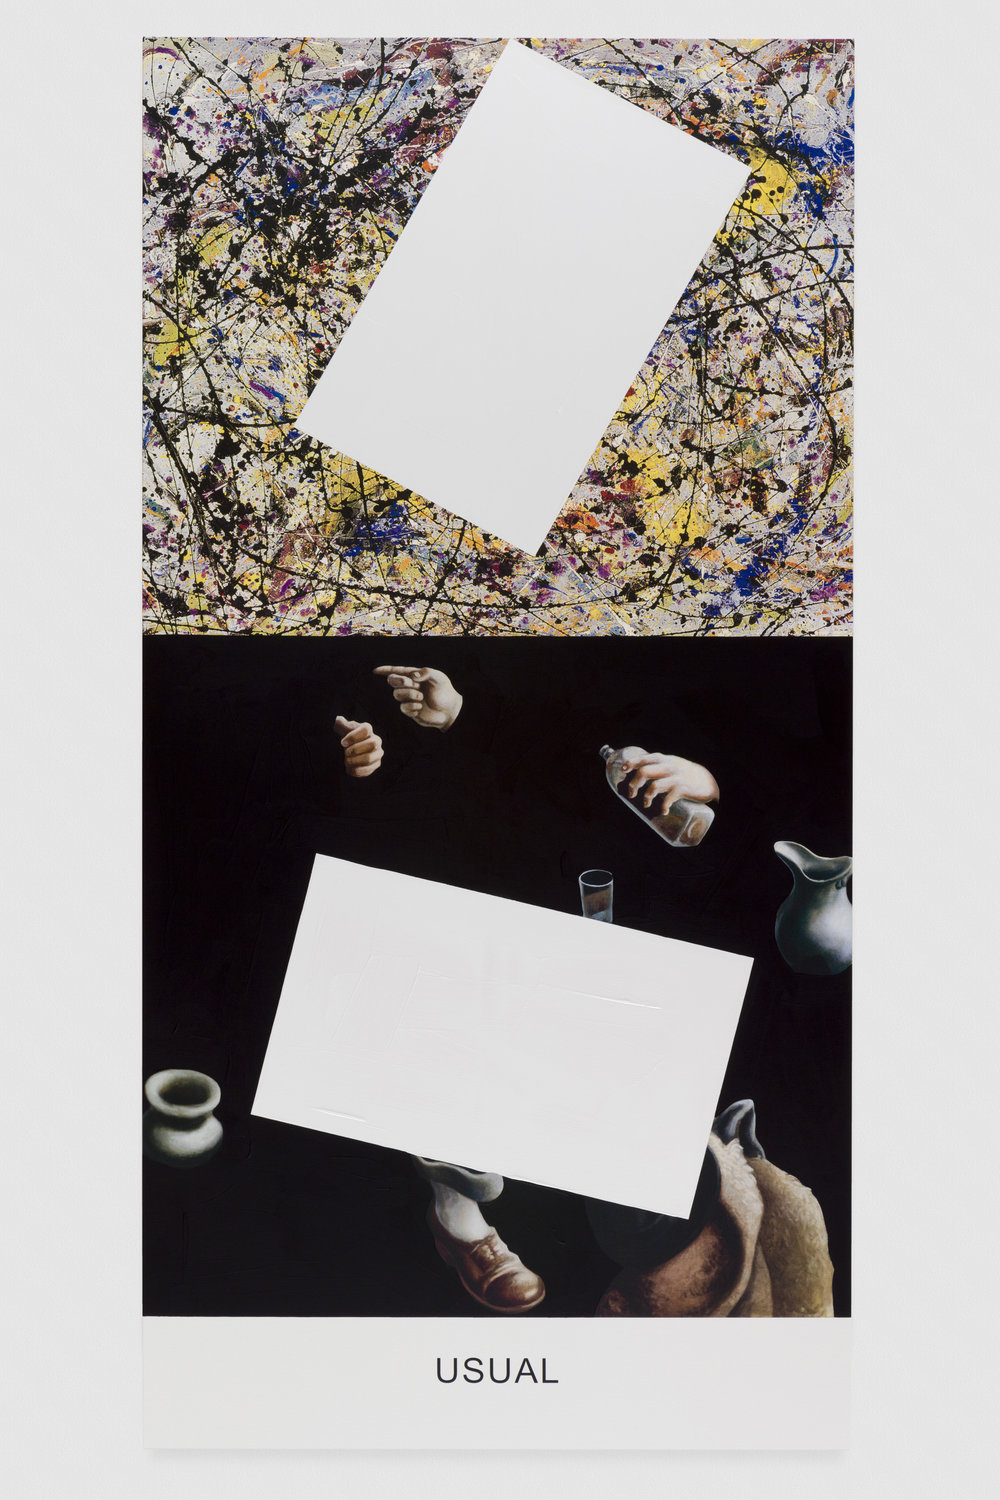 Pollock/Benton: Usual, 2016. Photo credit: Joshua White, all images are courtesy of John Baldessari and the Marian Goodman Gallery